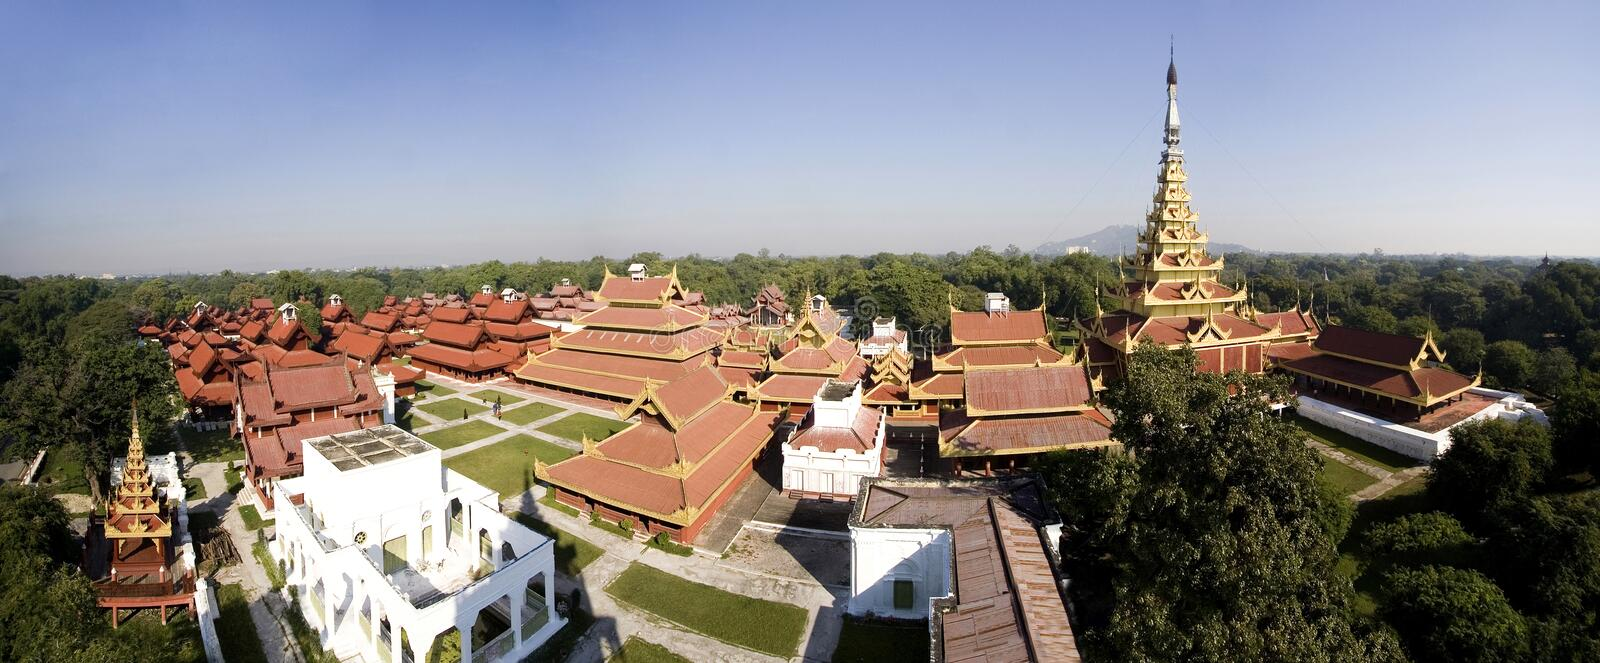 Royal Palace, Mandalay, vista panorâmico foto de stock